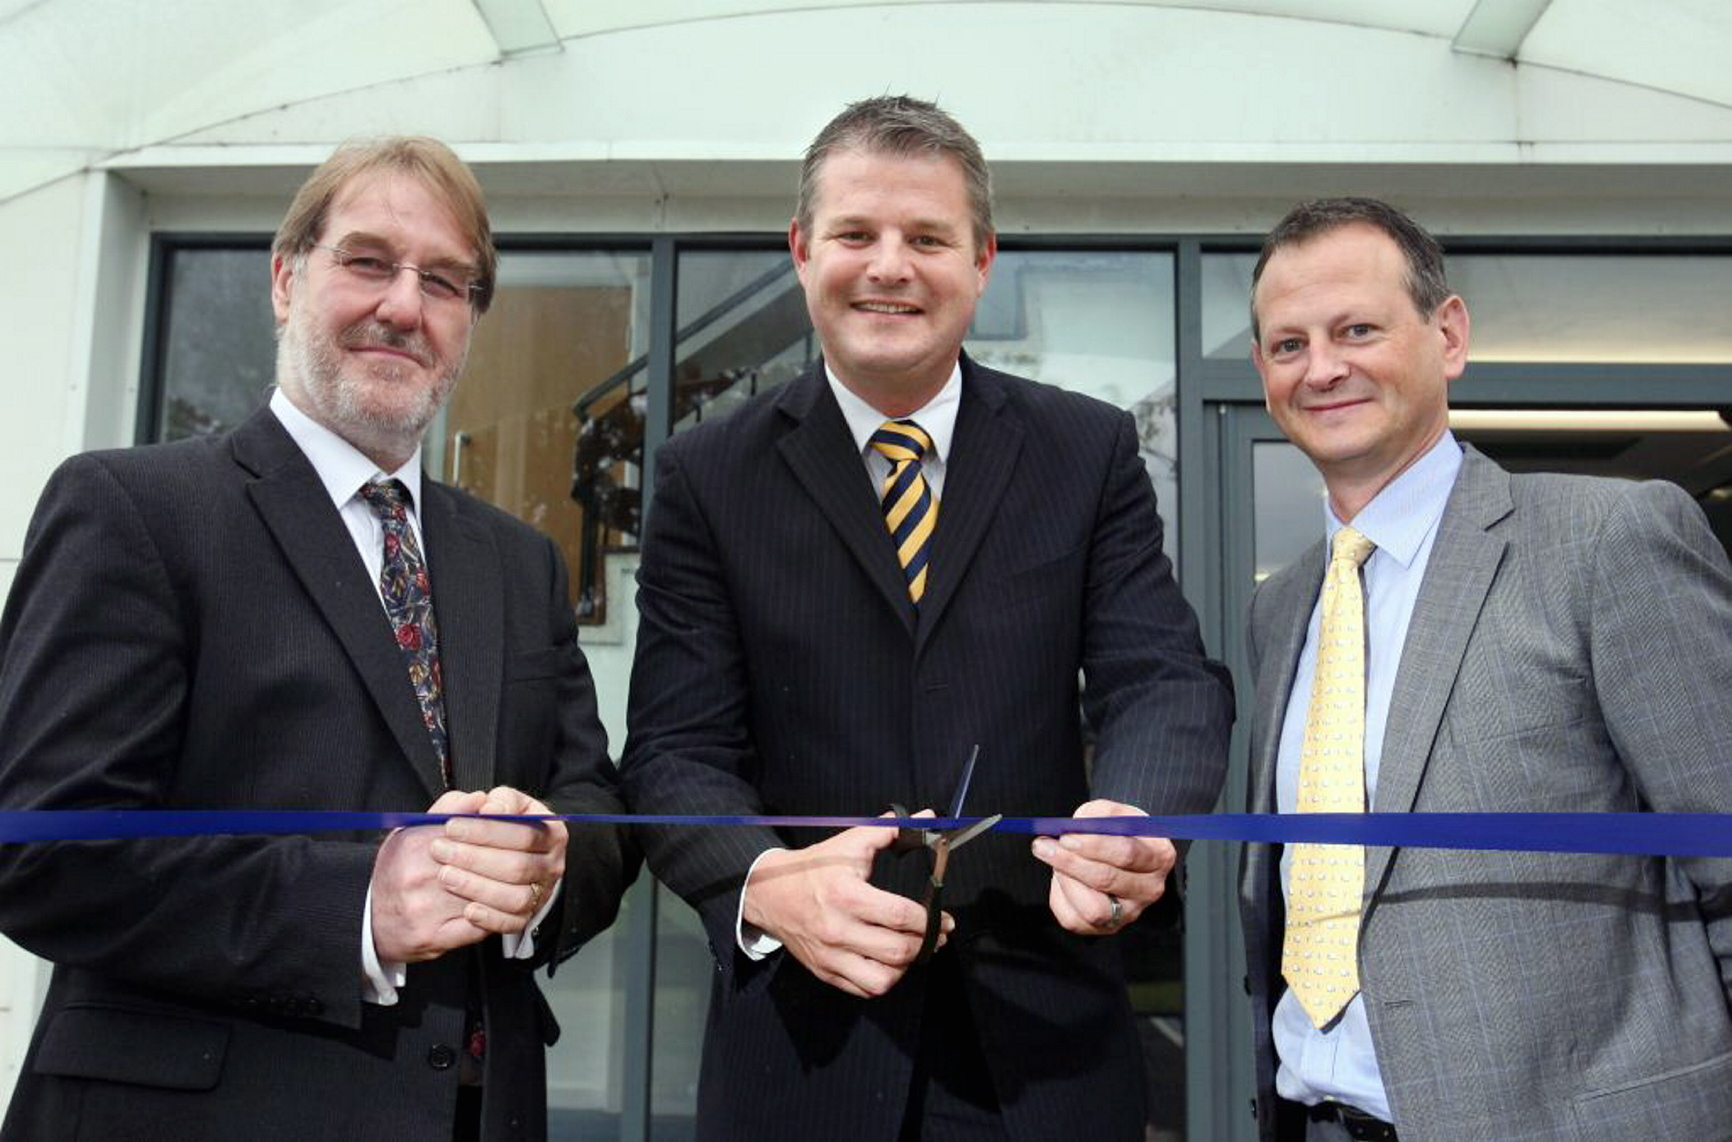 Stuart Andrew MP cuts the ribbon to open EMIS new offices in Rawdon... L-R: Chris Spencer, EMIS Company Secretary, Stuart Andrew, Sean Riddell, EMIS Chief Executive